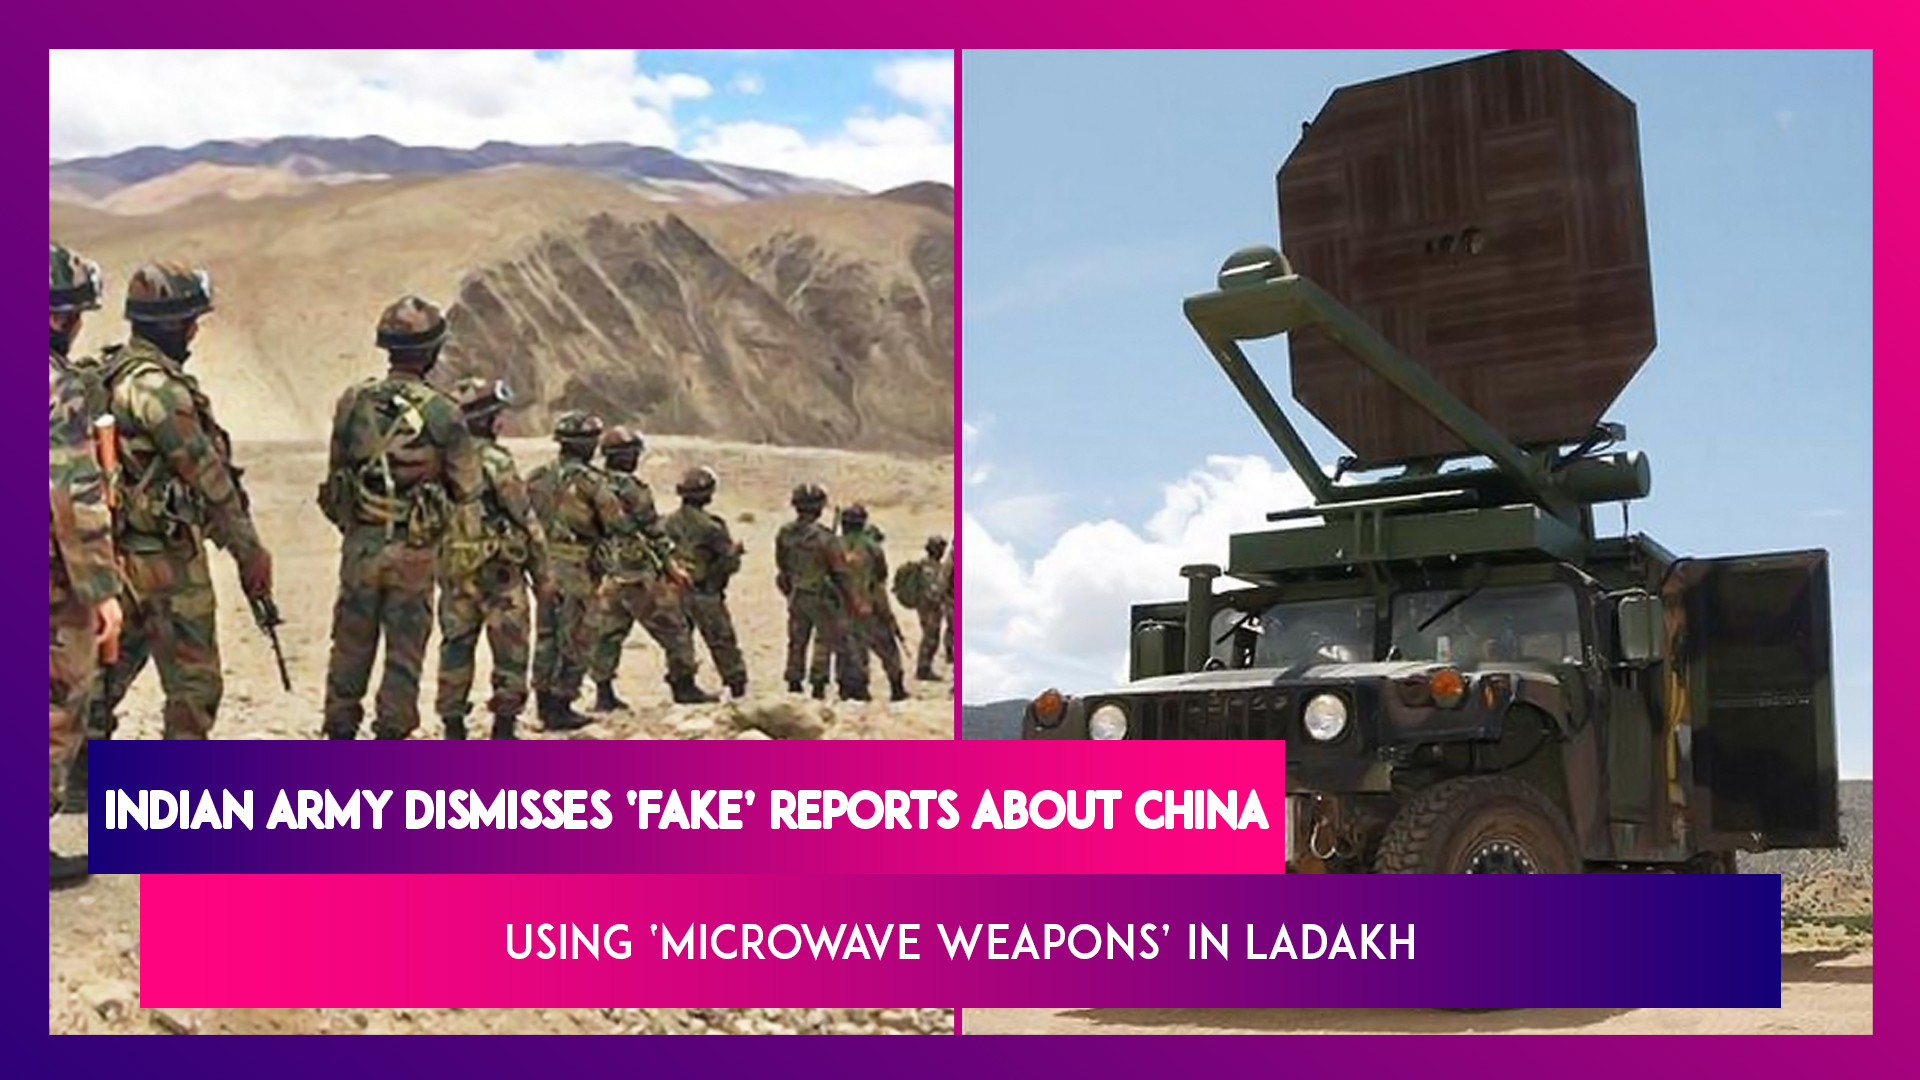 Indian Army Dismisses As 'Fake' Reports About China Using 'Microwave Weapons' In Ladakh; What Are They?